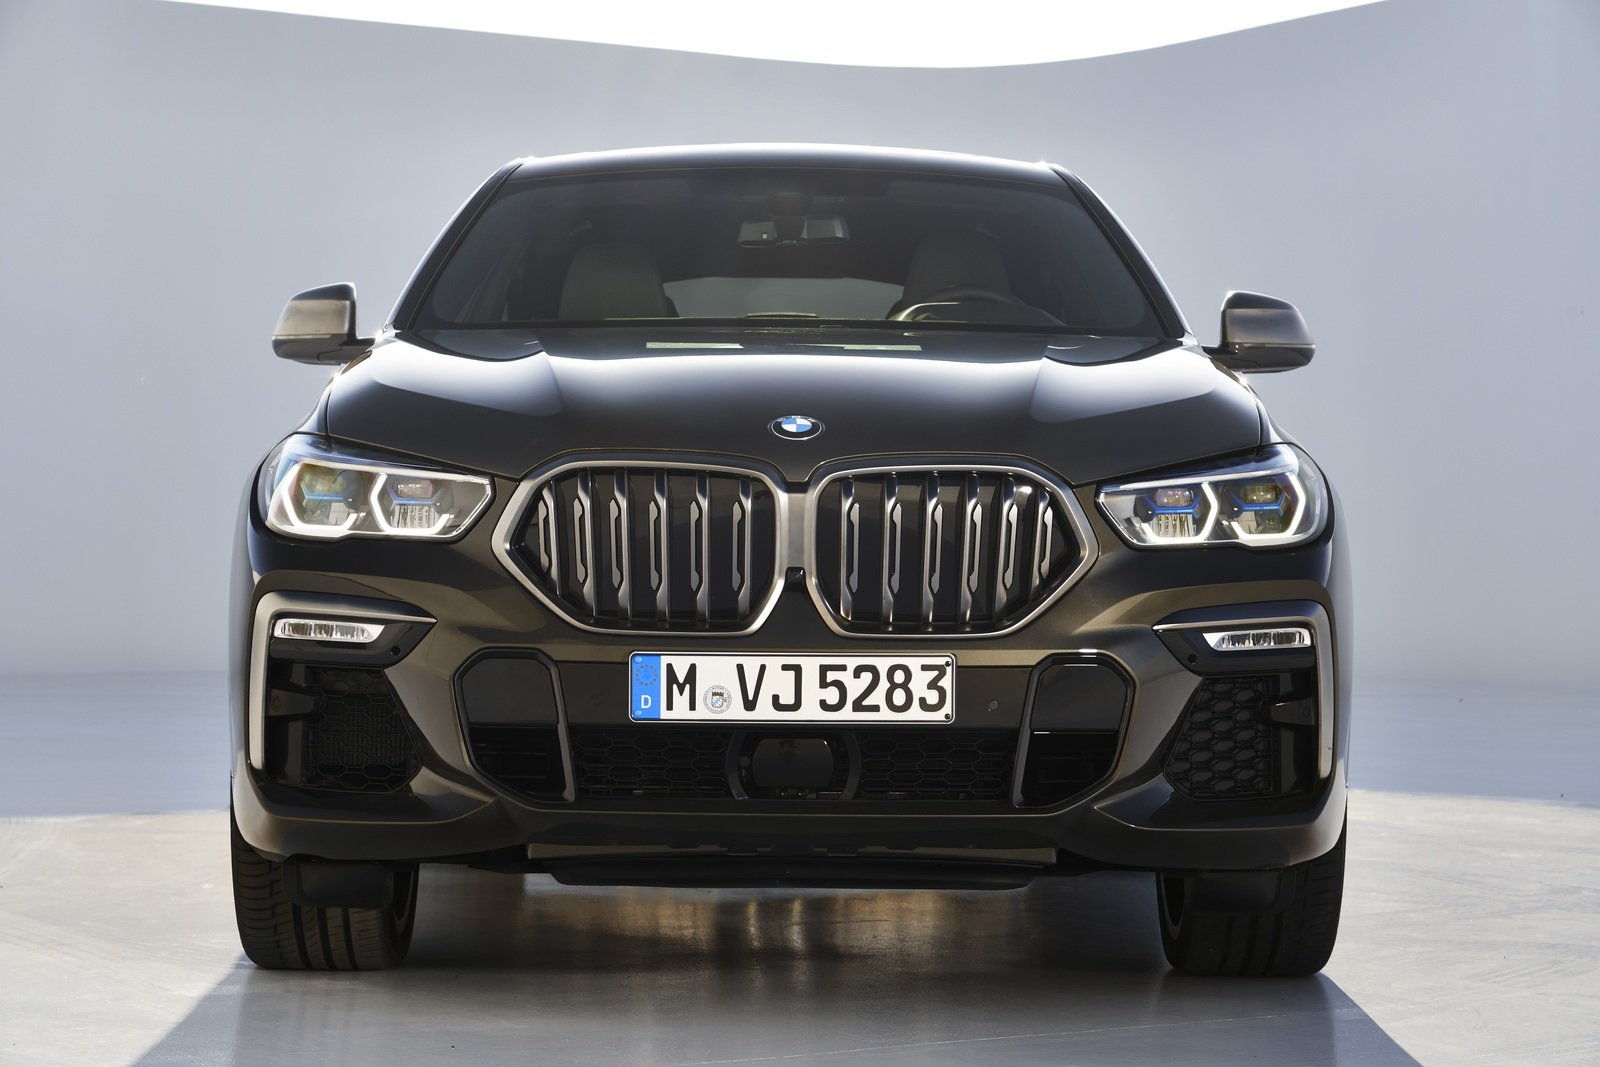 2020 Bmw X6 Quirks And Facts Top Speed